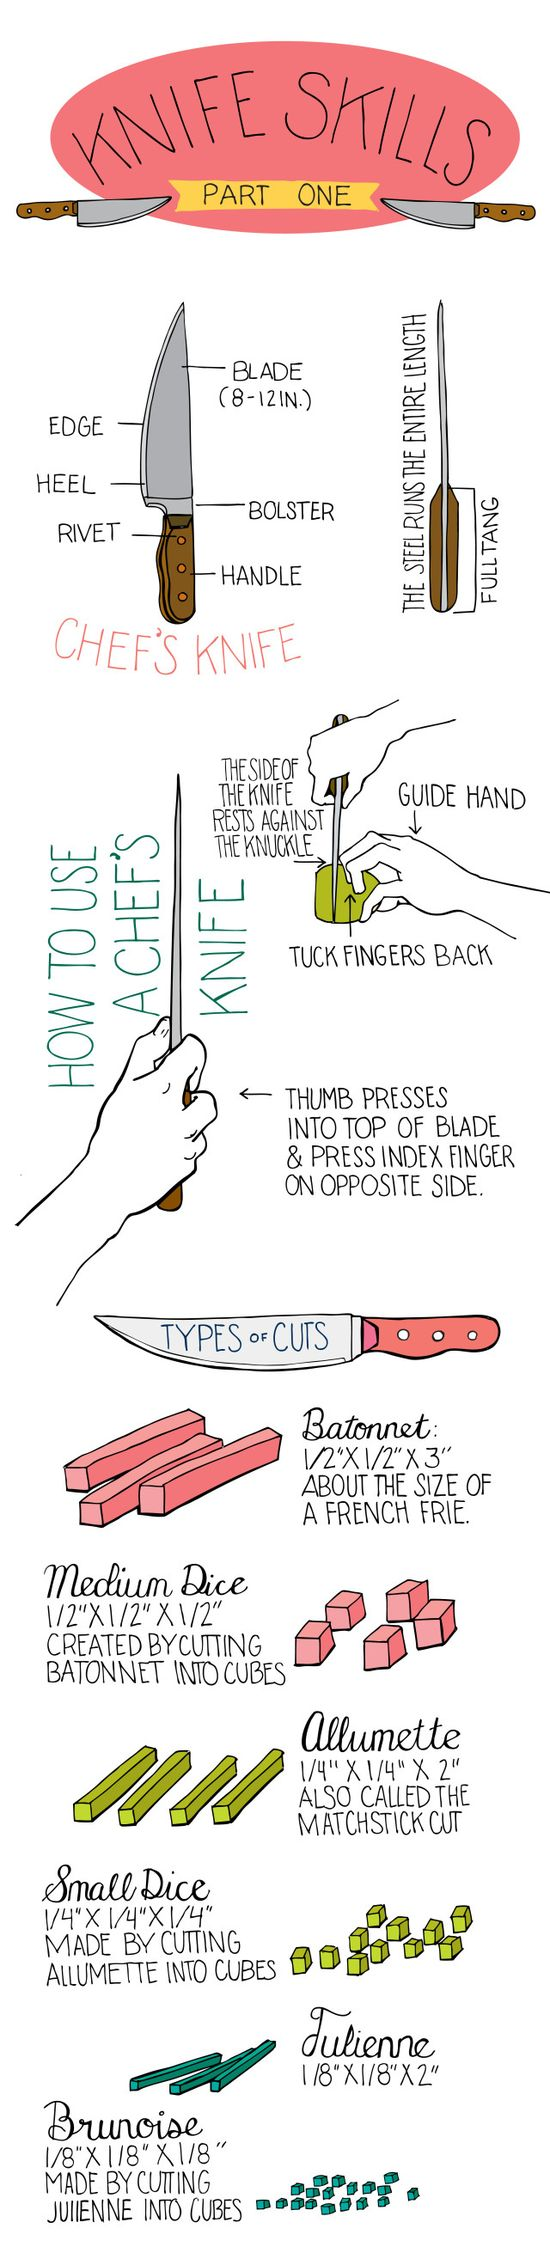 Learn Professional Knife Skills [Infographic] - BestInfographics.co